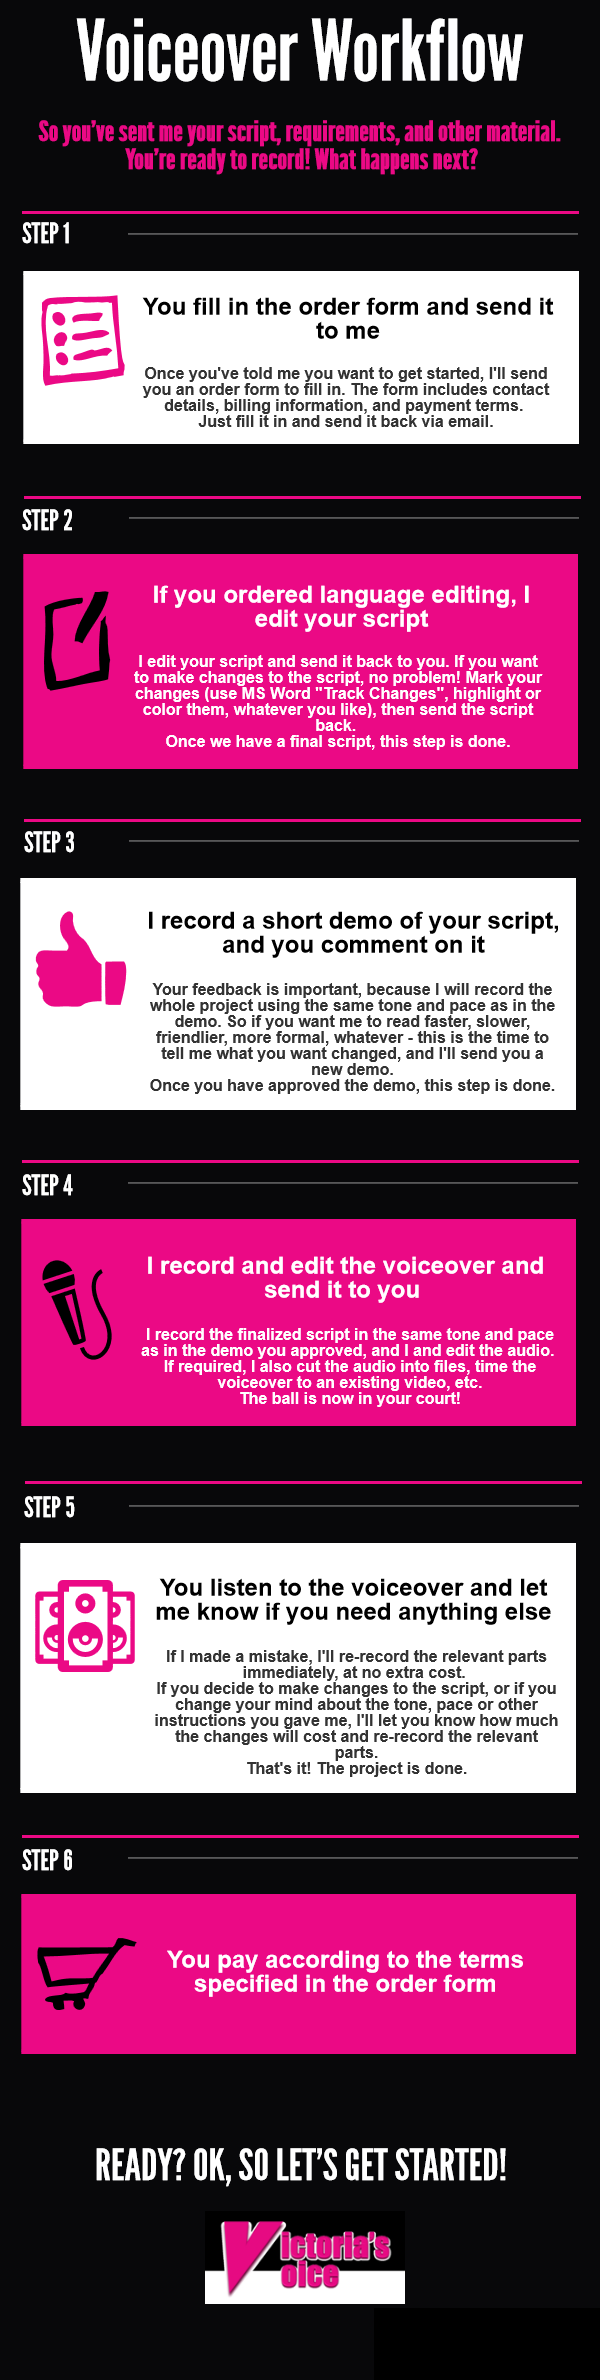 Infographic describing the complete voiceover workflow